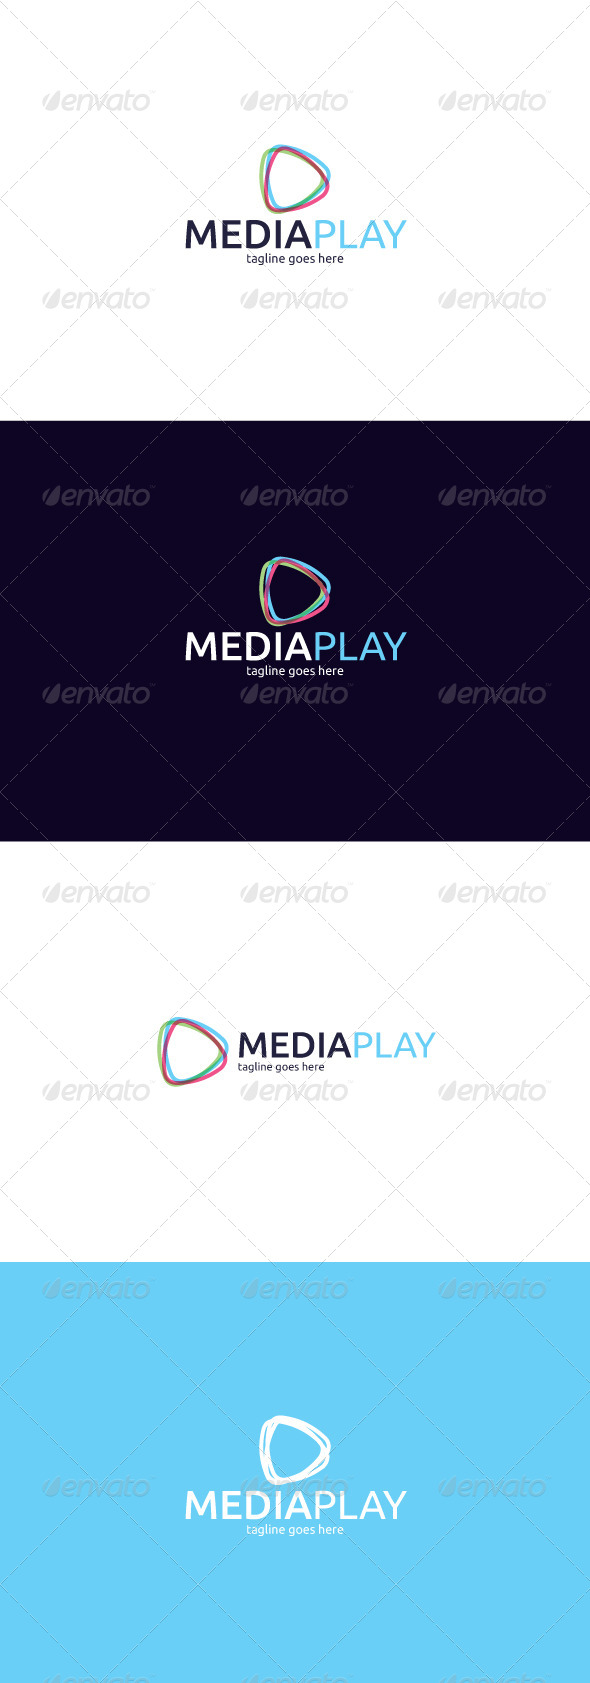 GraphicRiver Media Play Logo 8282237